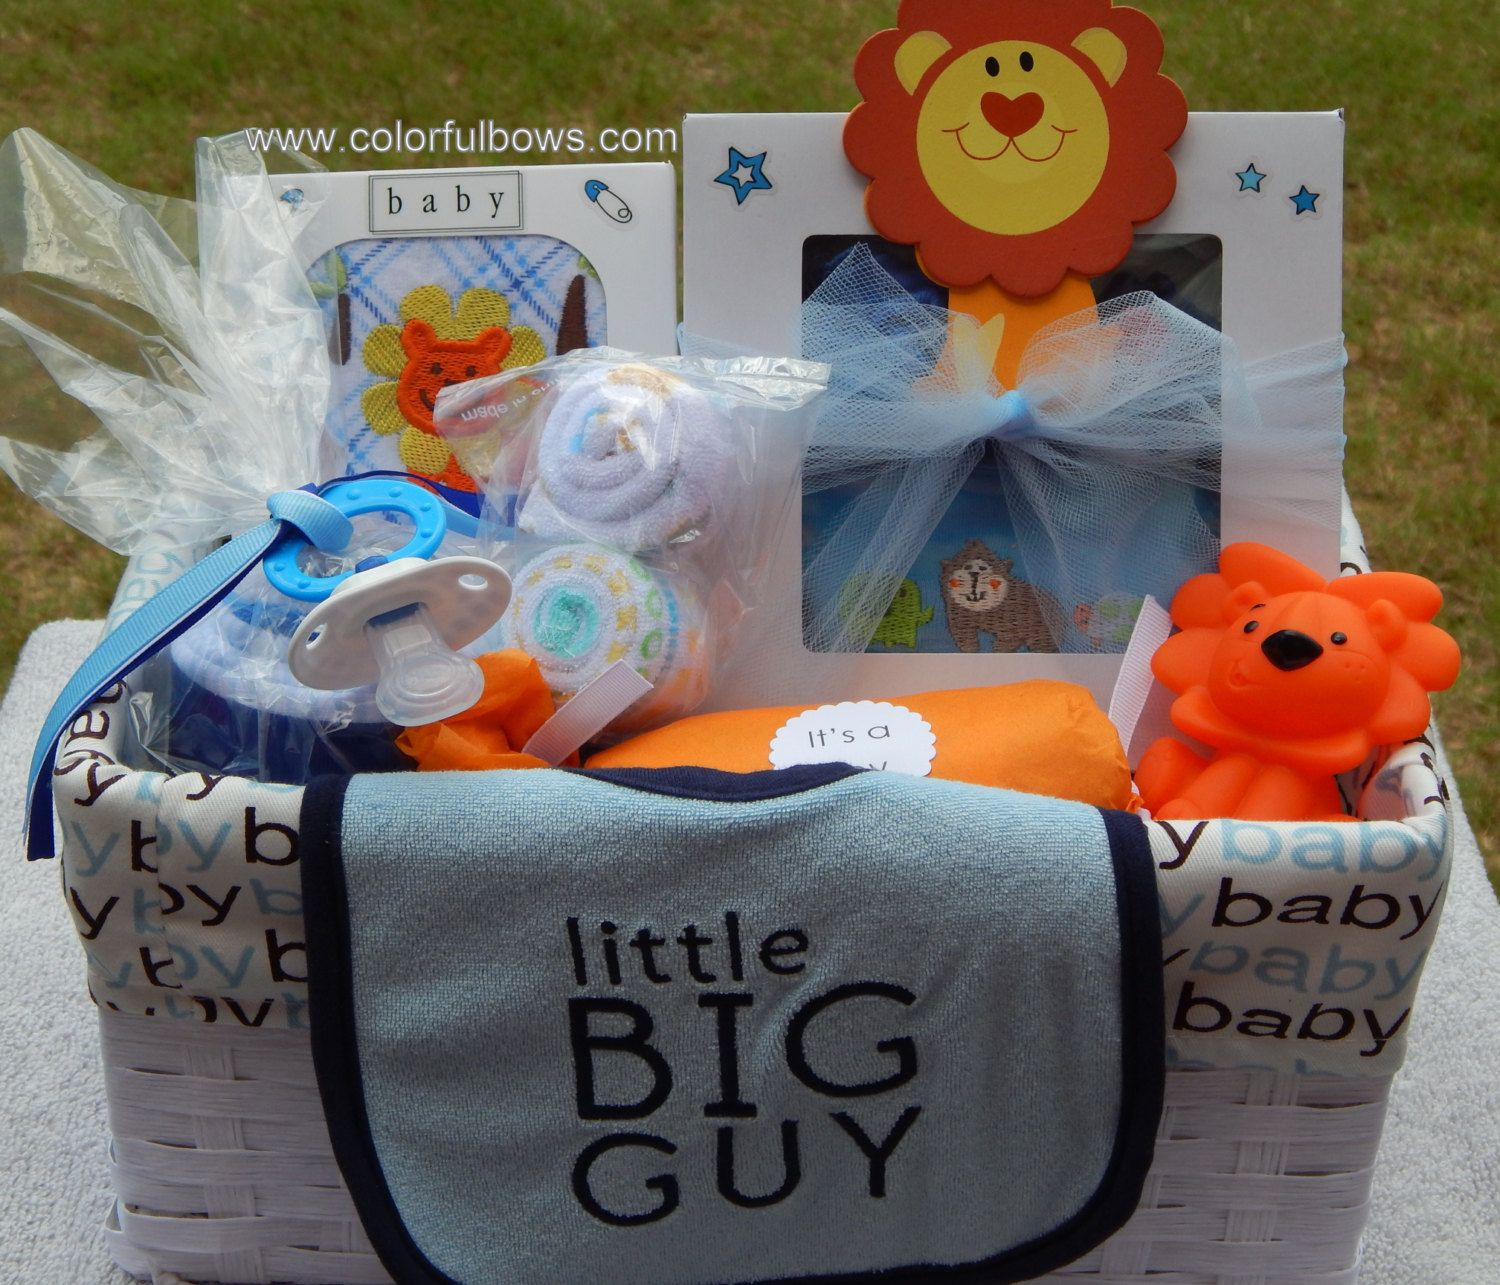 Premium little big guy baby boy gift basket ready to ship lion a lion baby gift basket with baby items that are just adorable negle Choice Image